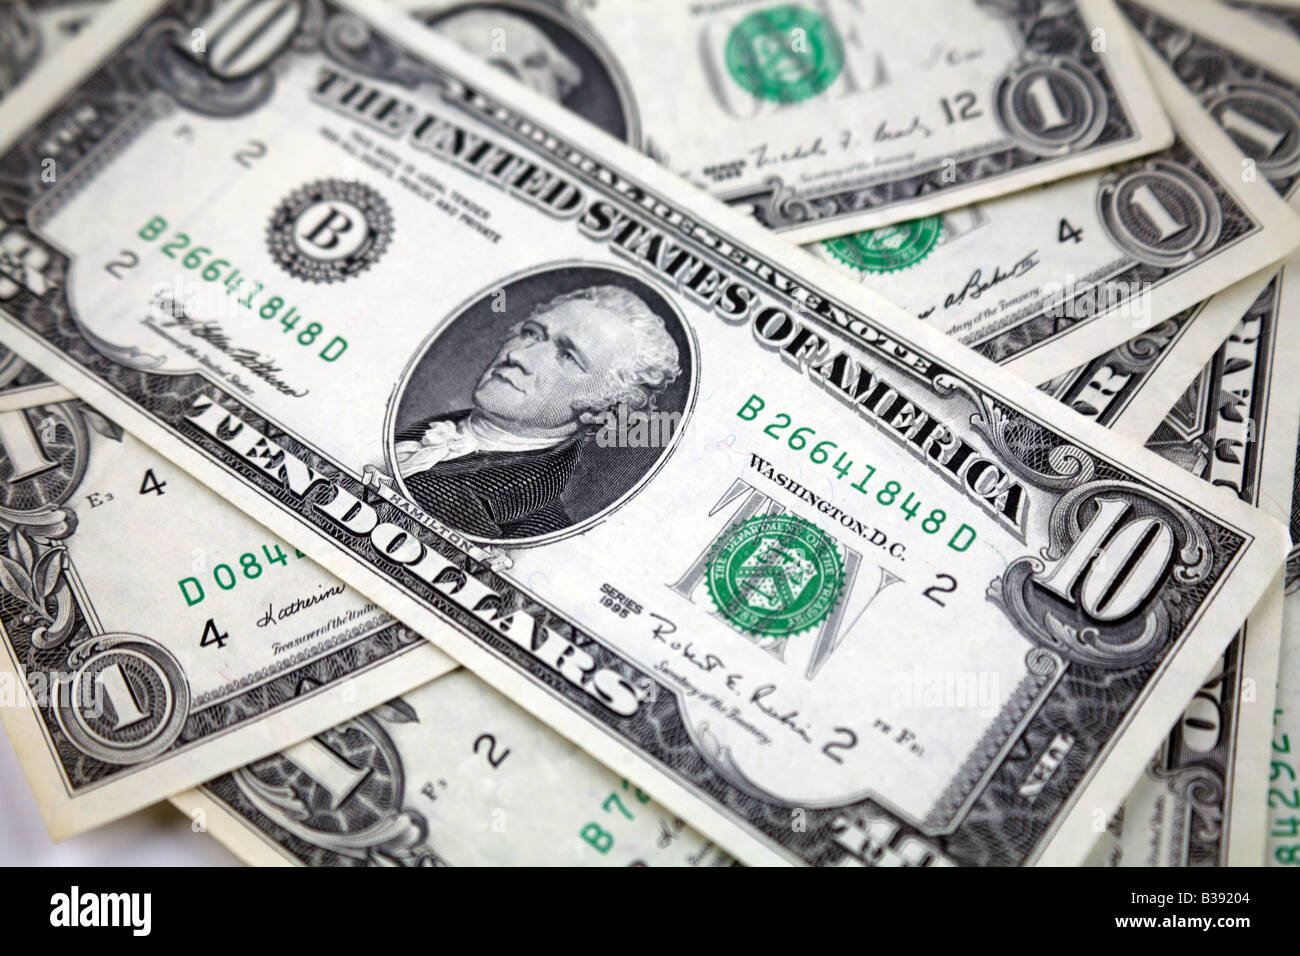 10 dollar Green Back Bank note Dollars from United States of America - Stock Image